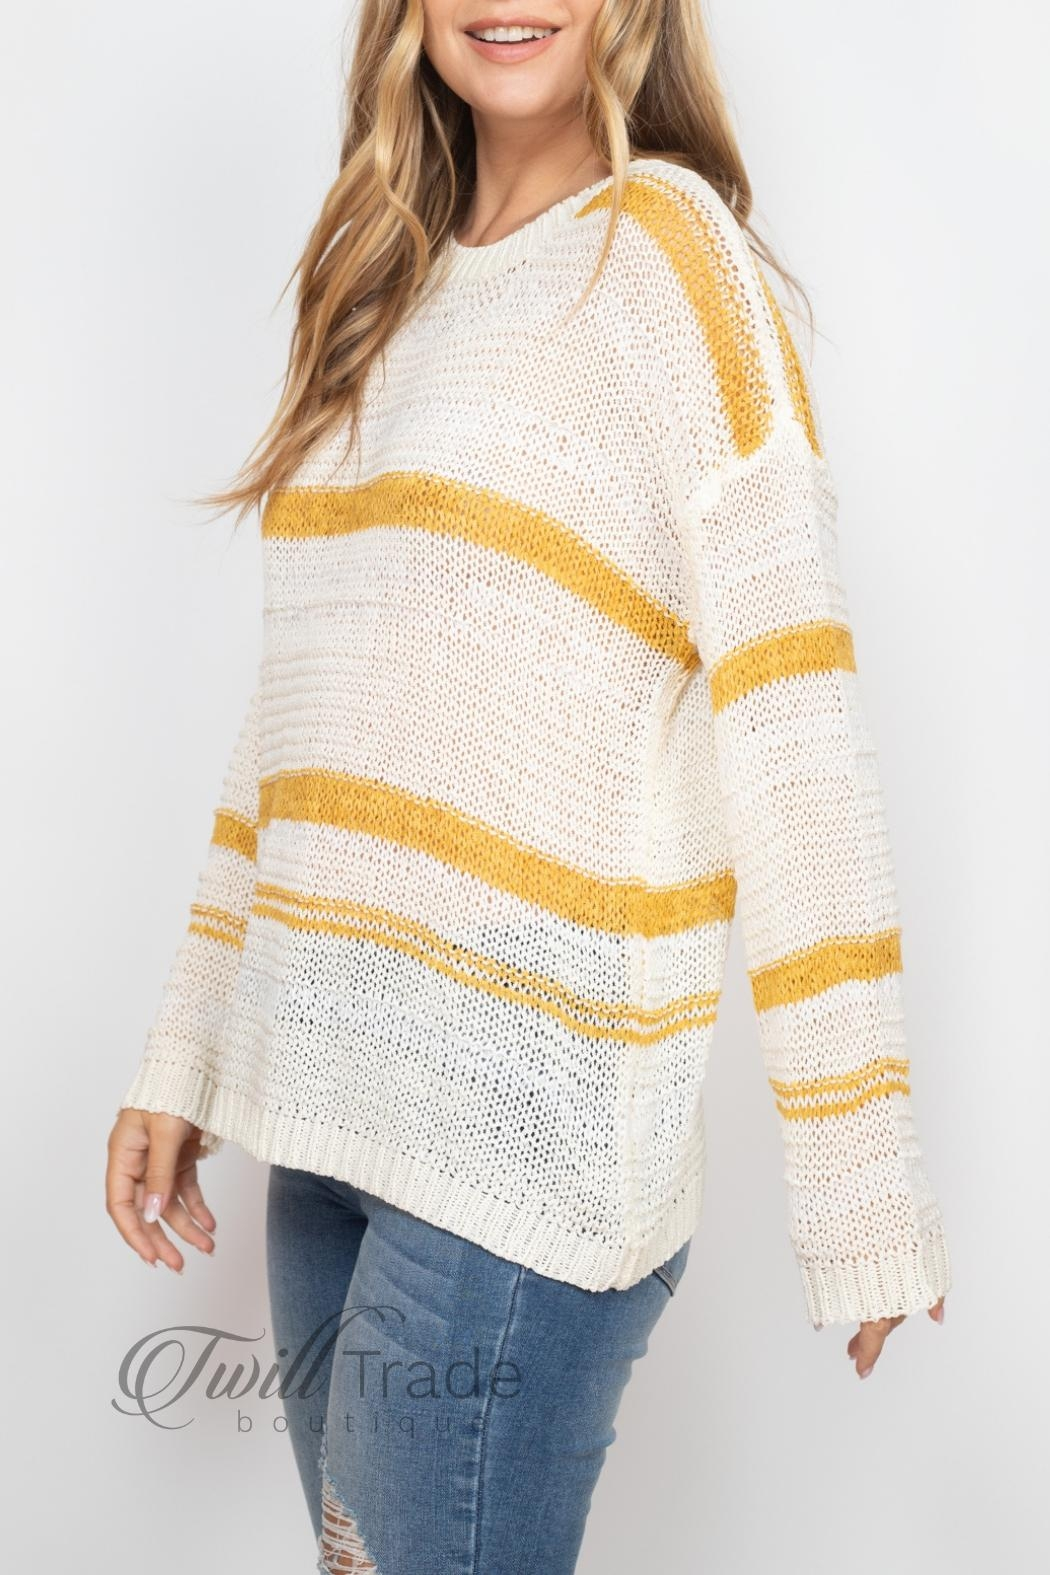 Unbranded Ivory Mustard Sweater - Front Full Image